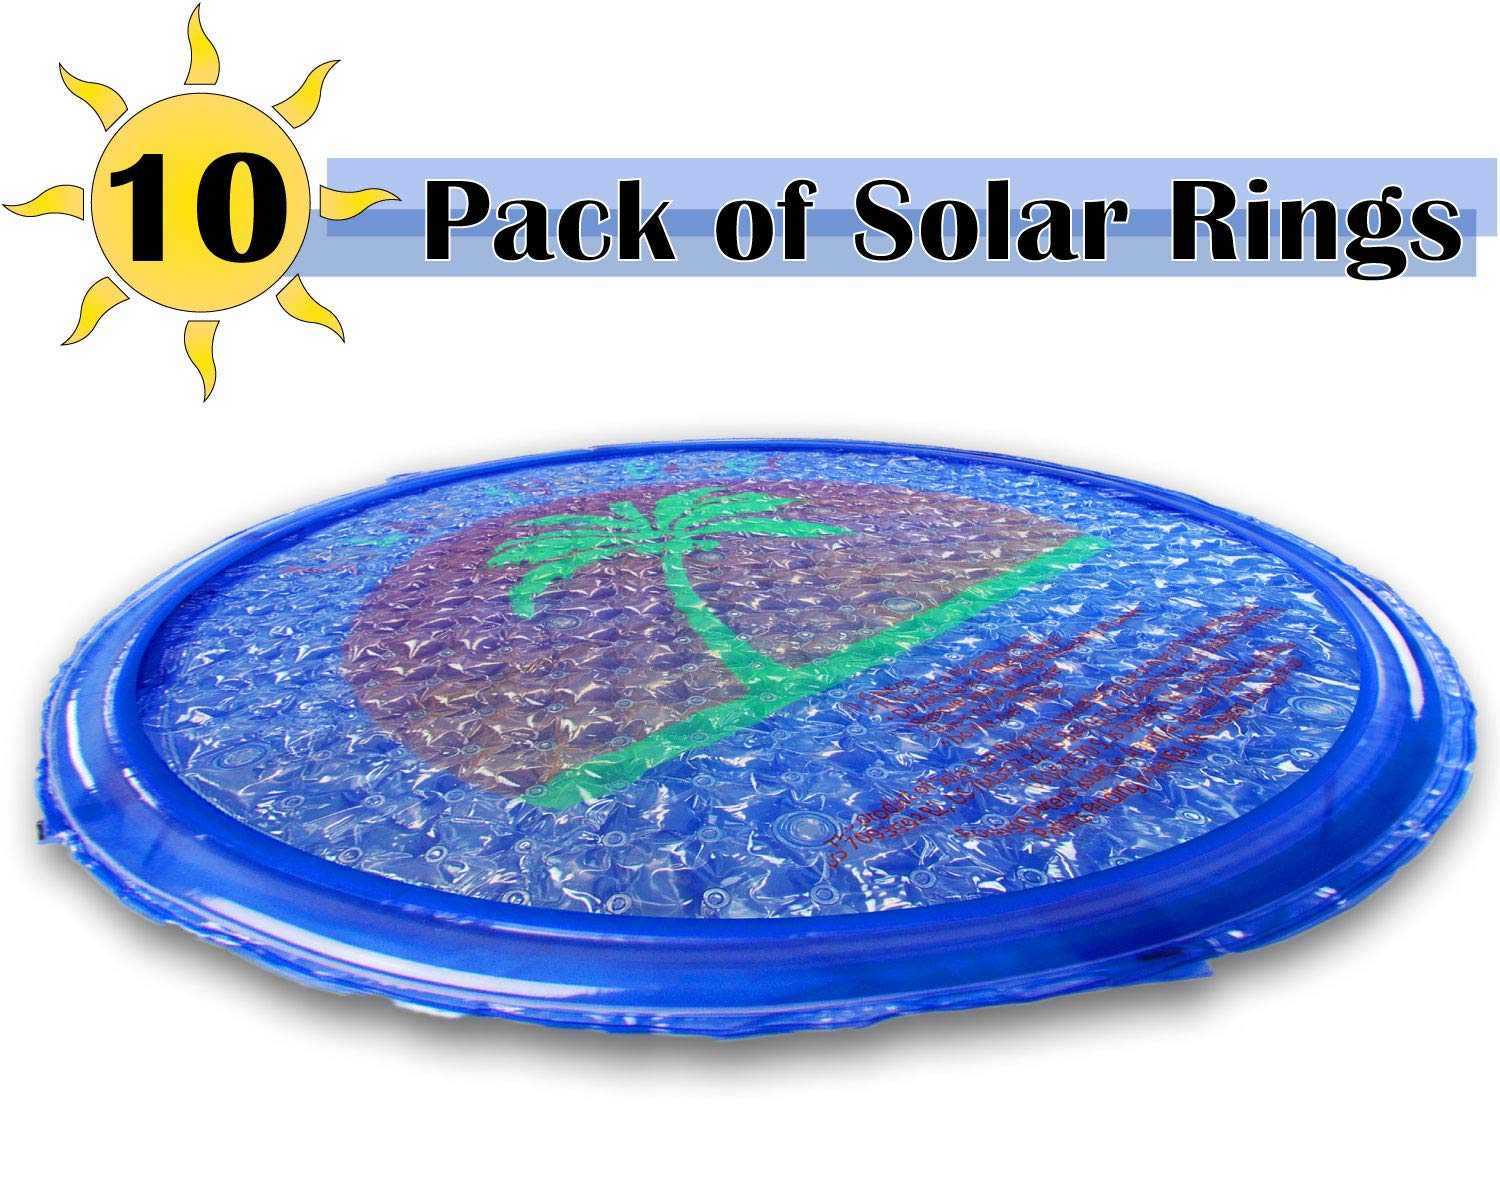 10' Solar Ring Pool Cover